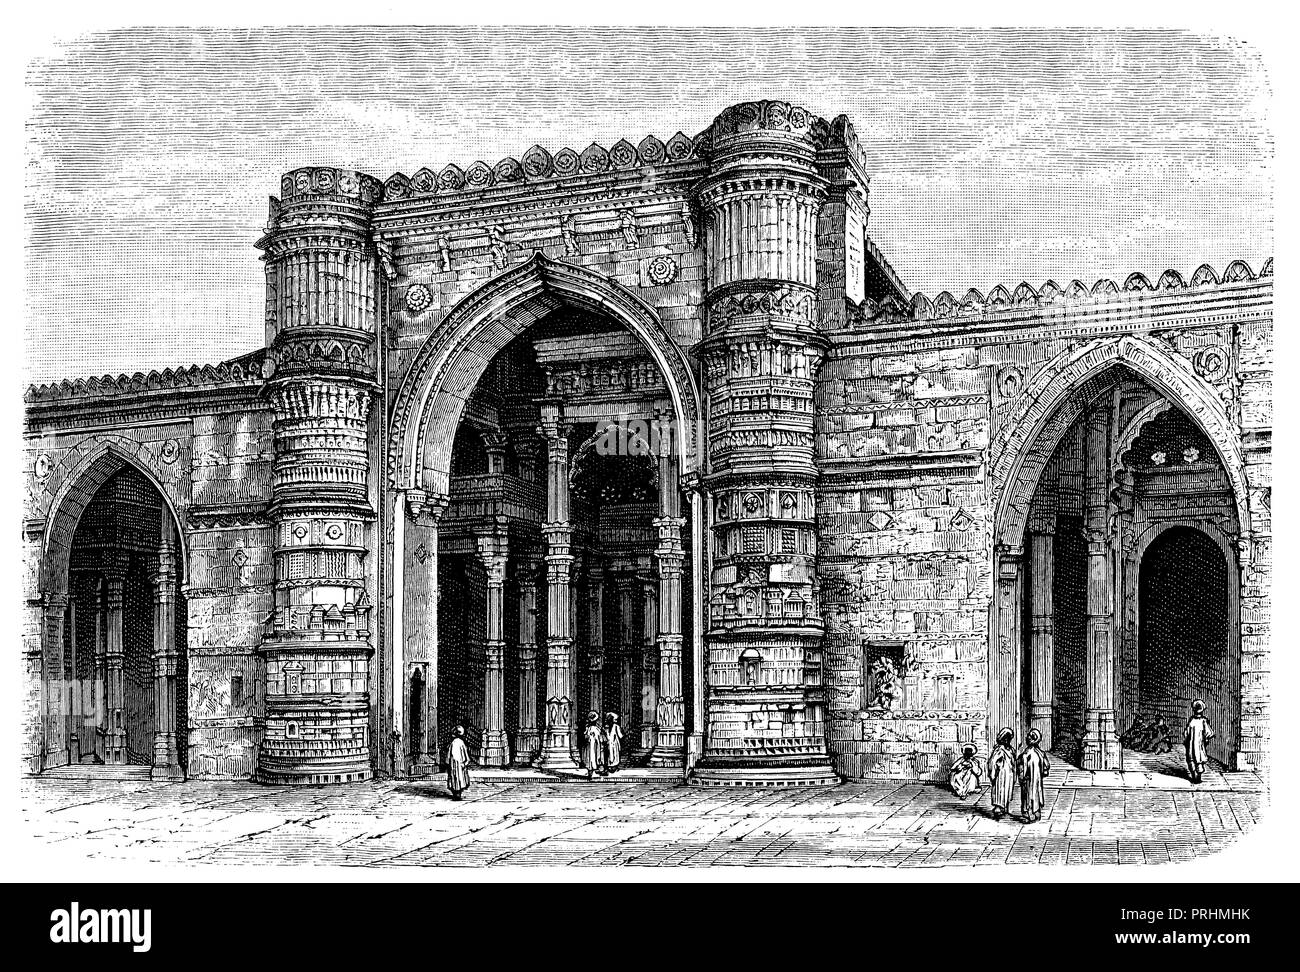 Portal of the Jamma Mashid (Grand Mosque) in Ahmedabad, - Stock Image